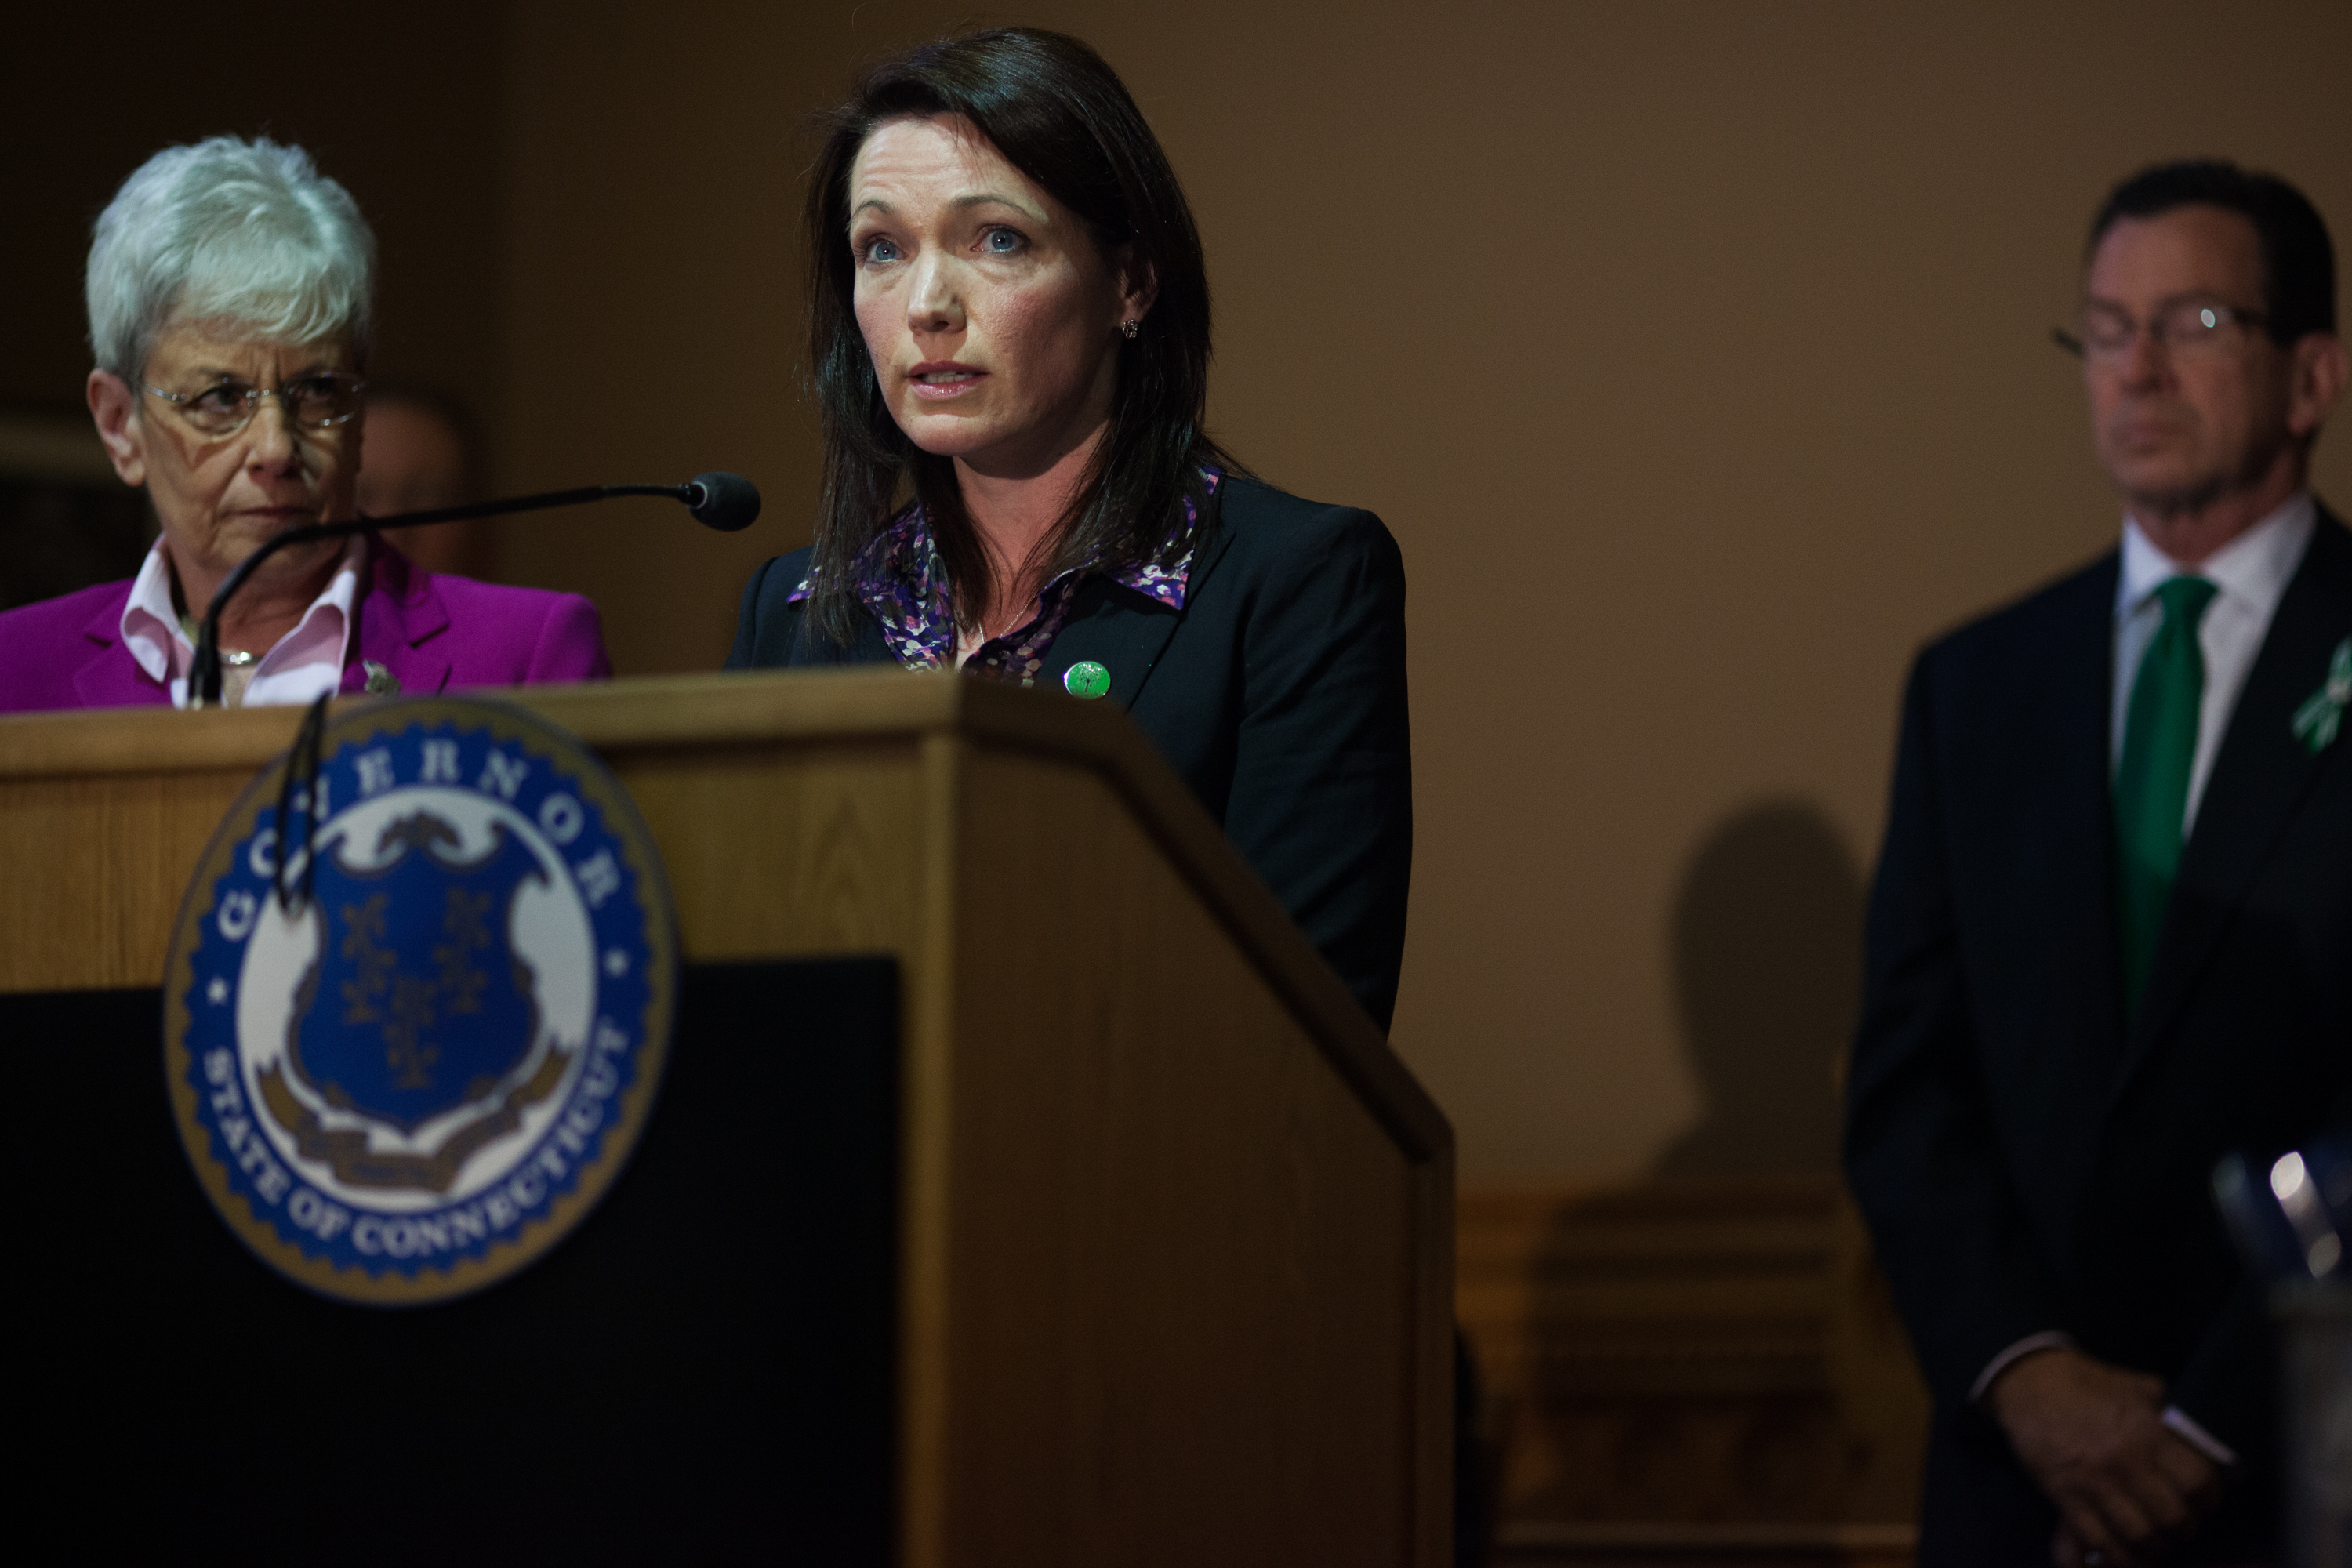 HARTFORD, CT - APRIL 4:  Nicole Hockley (C), a parent of Sandy Hook School shooting victim Dylan Hockley,speaks in the Old Judiciary Room prior to the signing of the historic gun control bill as Connecticut Gov. Dannel Malloy (R) looks on April 4, 2013 in Hartford, Connecticut, After more than 13 hours of debate, the Connecticut General Assembly approved a gun-control bill early April 4, that proponents seen as the toughest-in-the-nation response to the Demember 14, 2012 Newtown school shootings. (Photo by Christopher Capozziello/Getty Images)